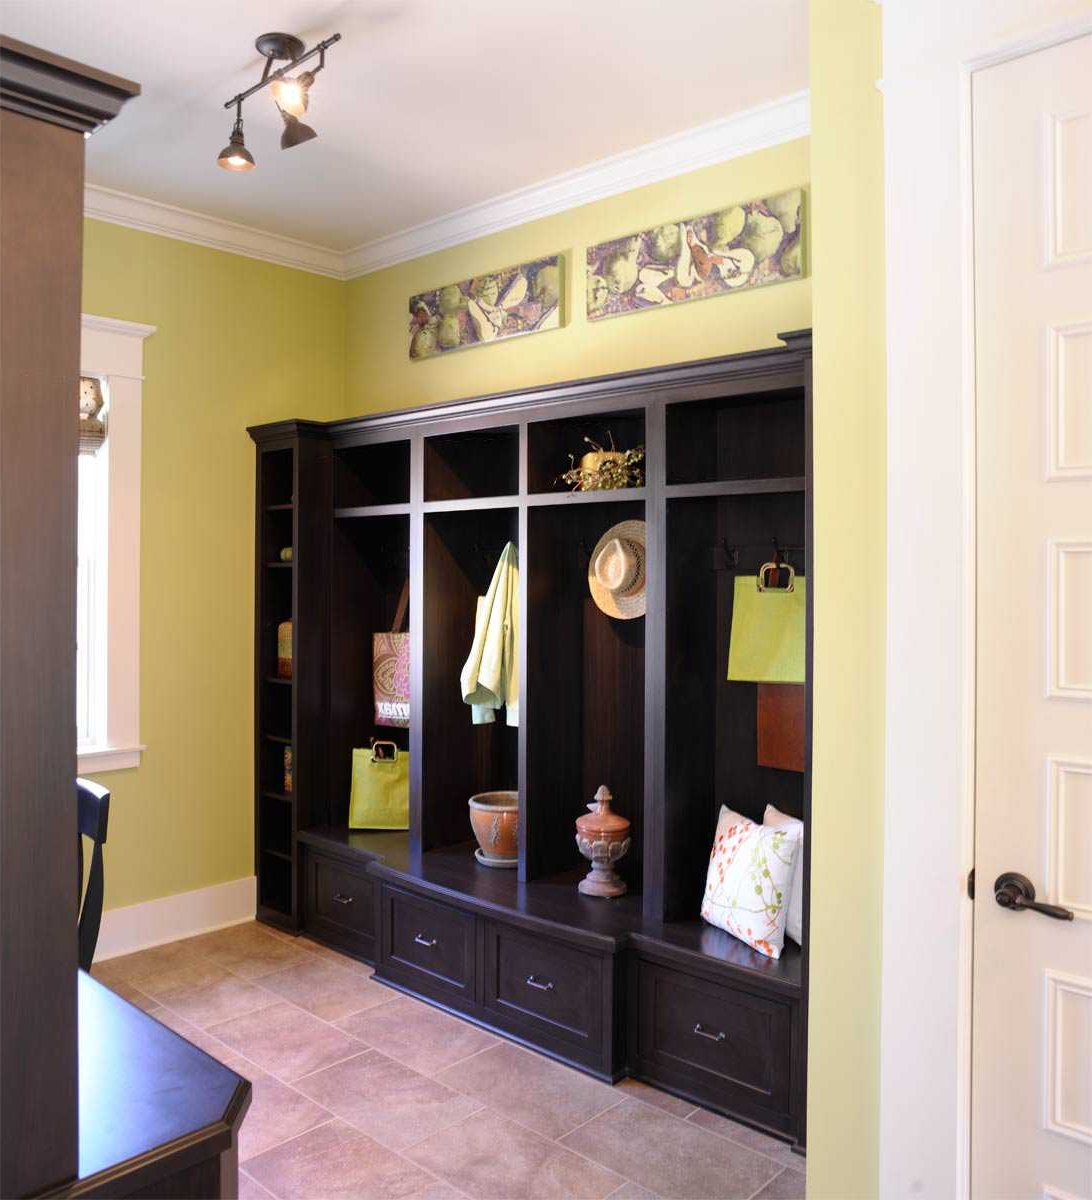 gothic black mudroom cabinet with hidden storages plus mini track  - gothic black mudroom cabinet with hidden storages plus mini track lightingalso yellow wall paint color